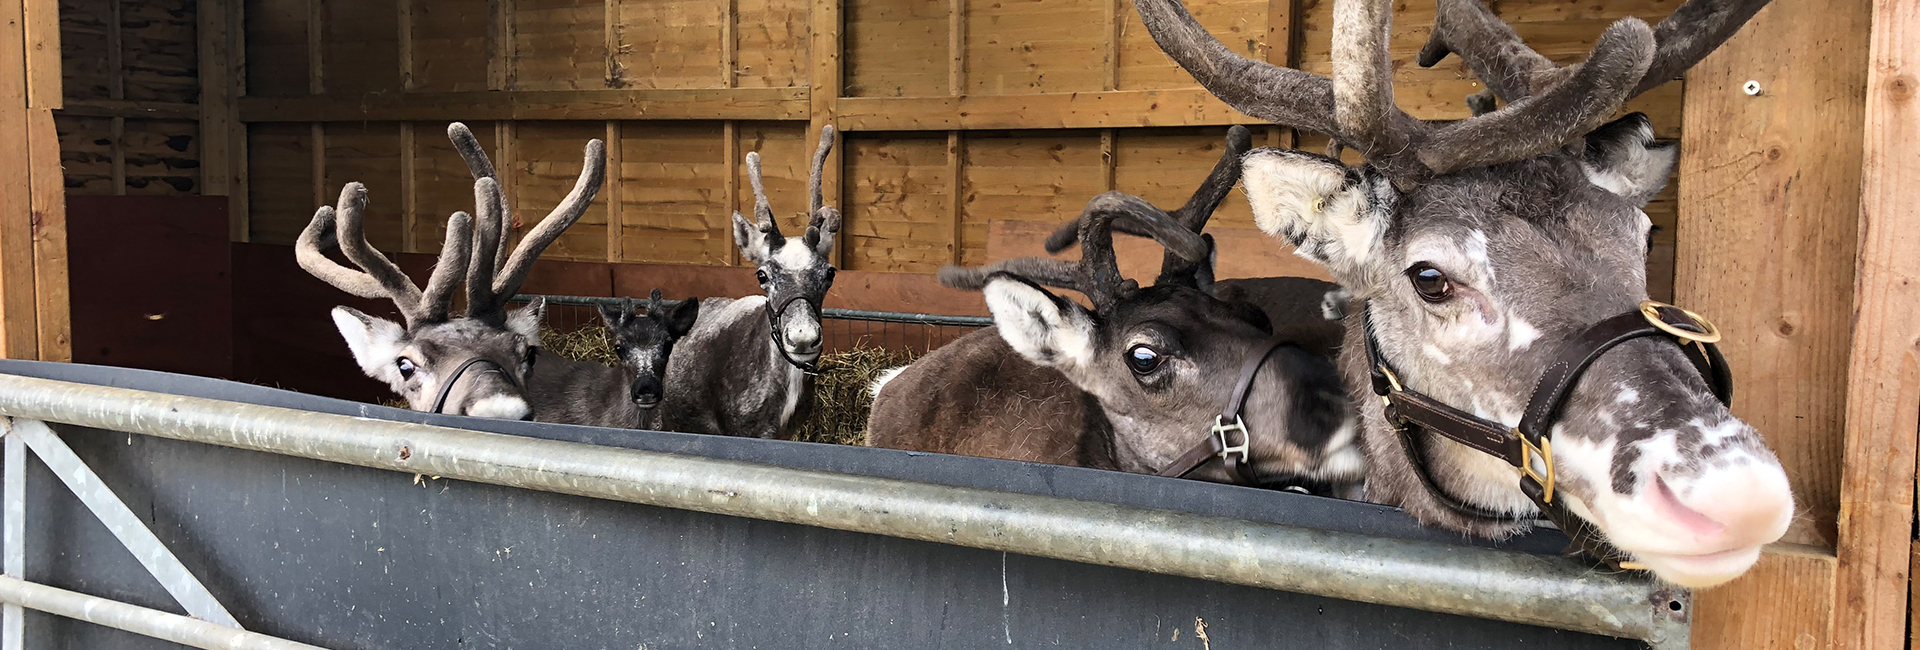 reindeer in barn